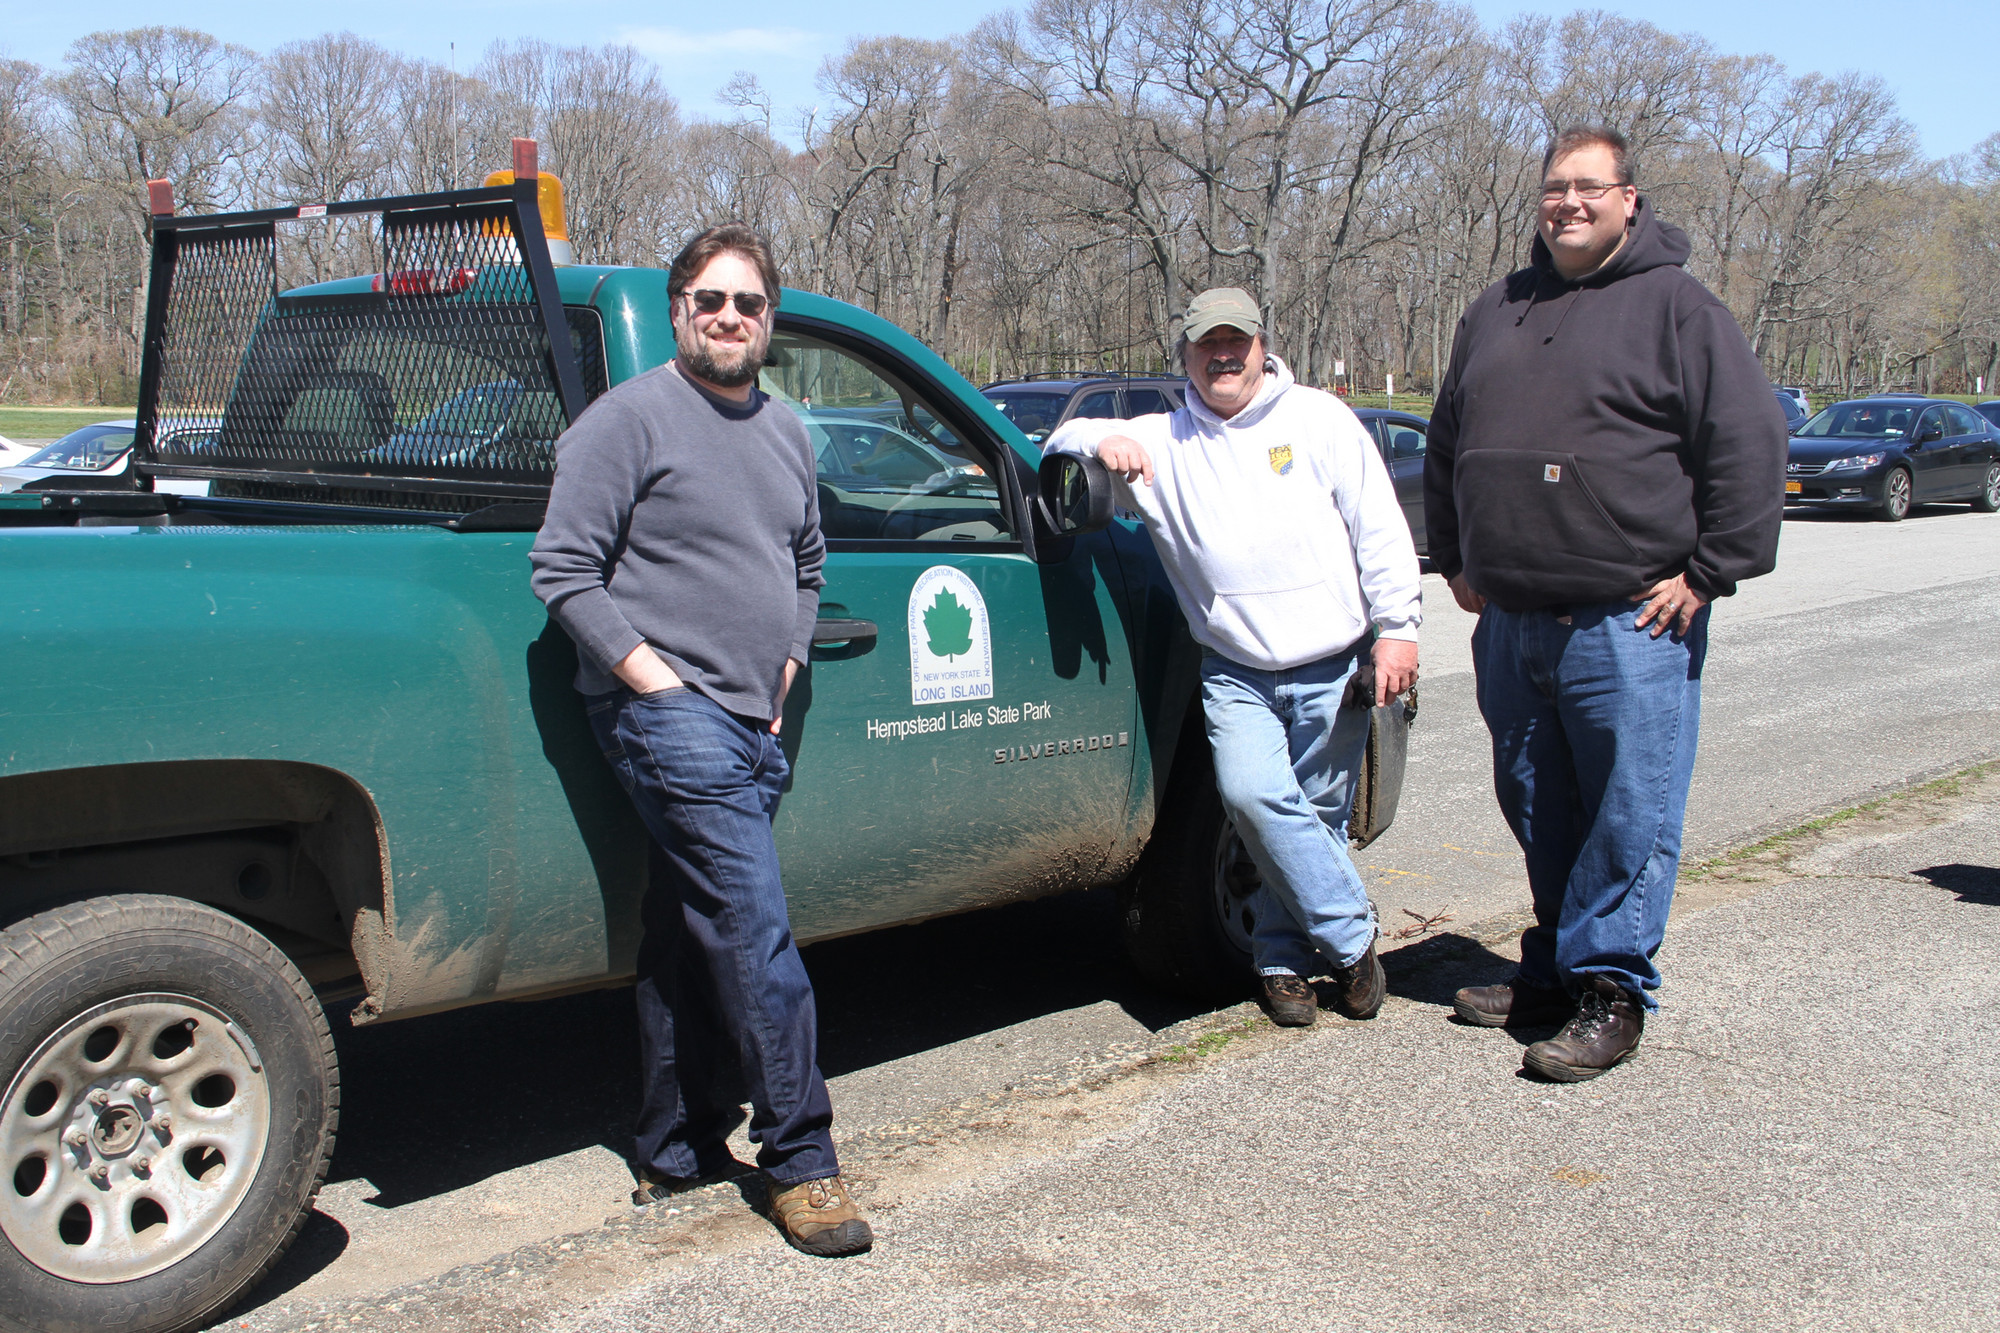 The Town of Hempstead Democratic Committee Environmental Caucus sponsored the cleanup. From left were, event organizer Michael Turi, Bob Young and park manager Bill Brown.